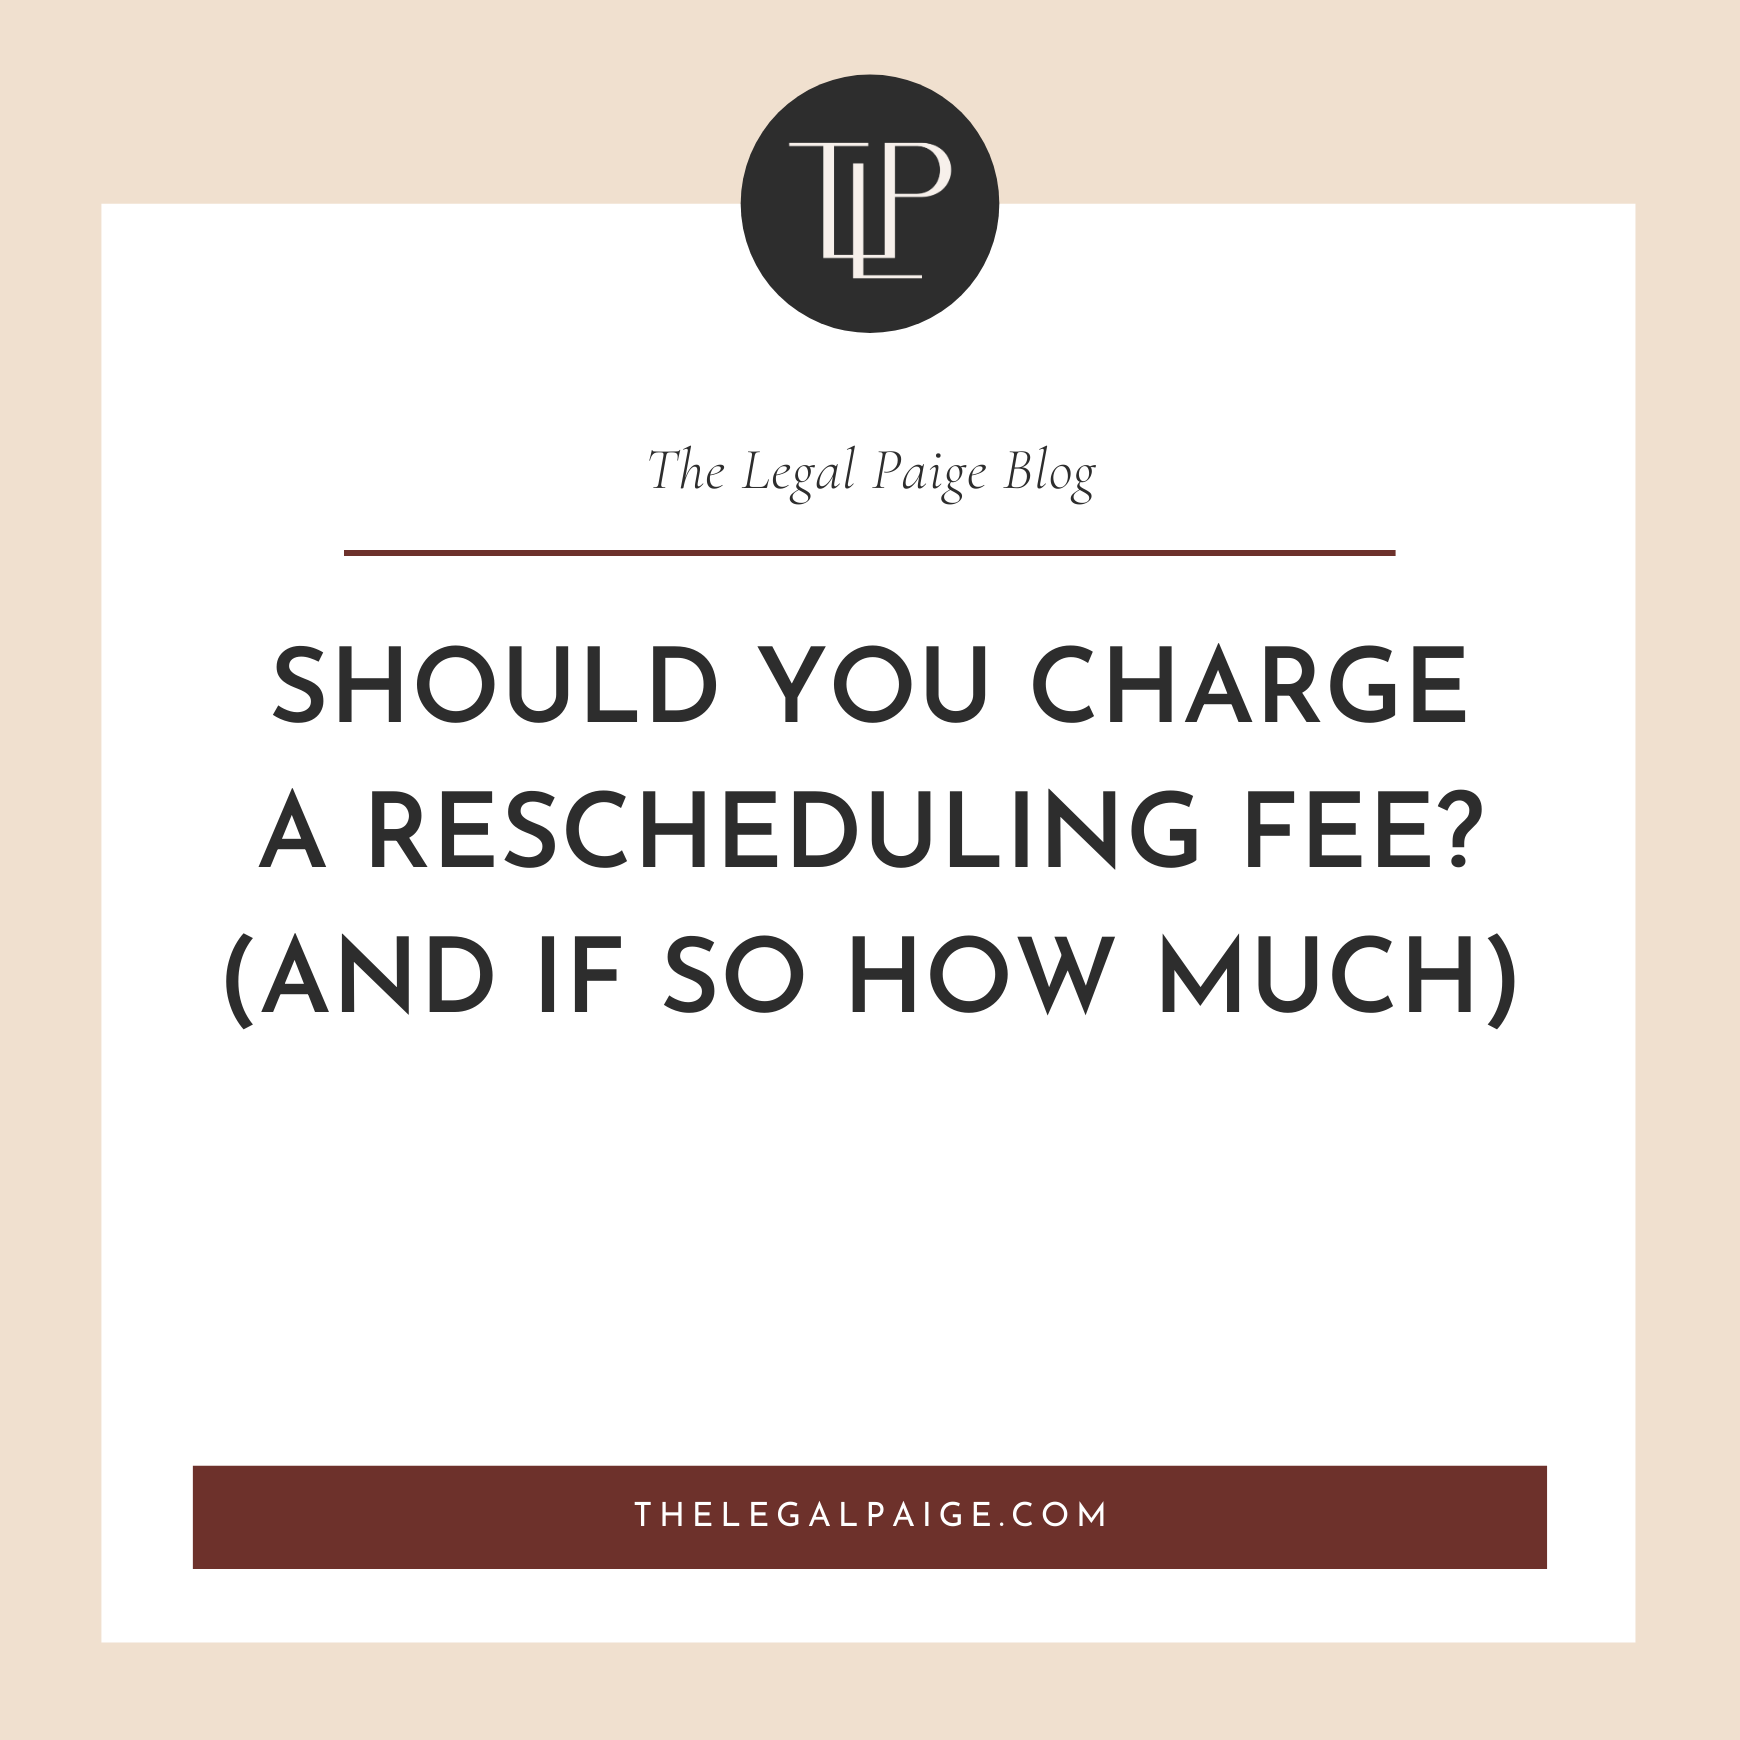 Should You Charge for Rescheduling Fee? (and if so how much)